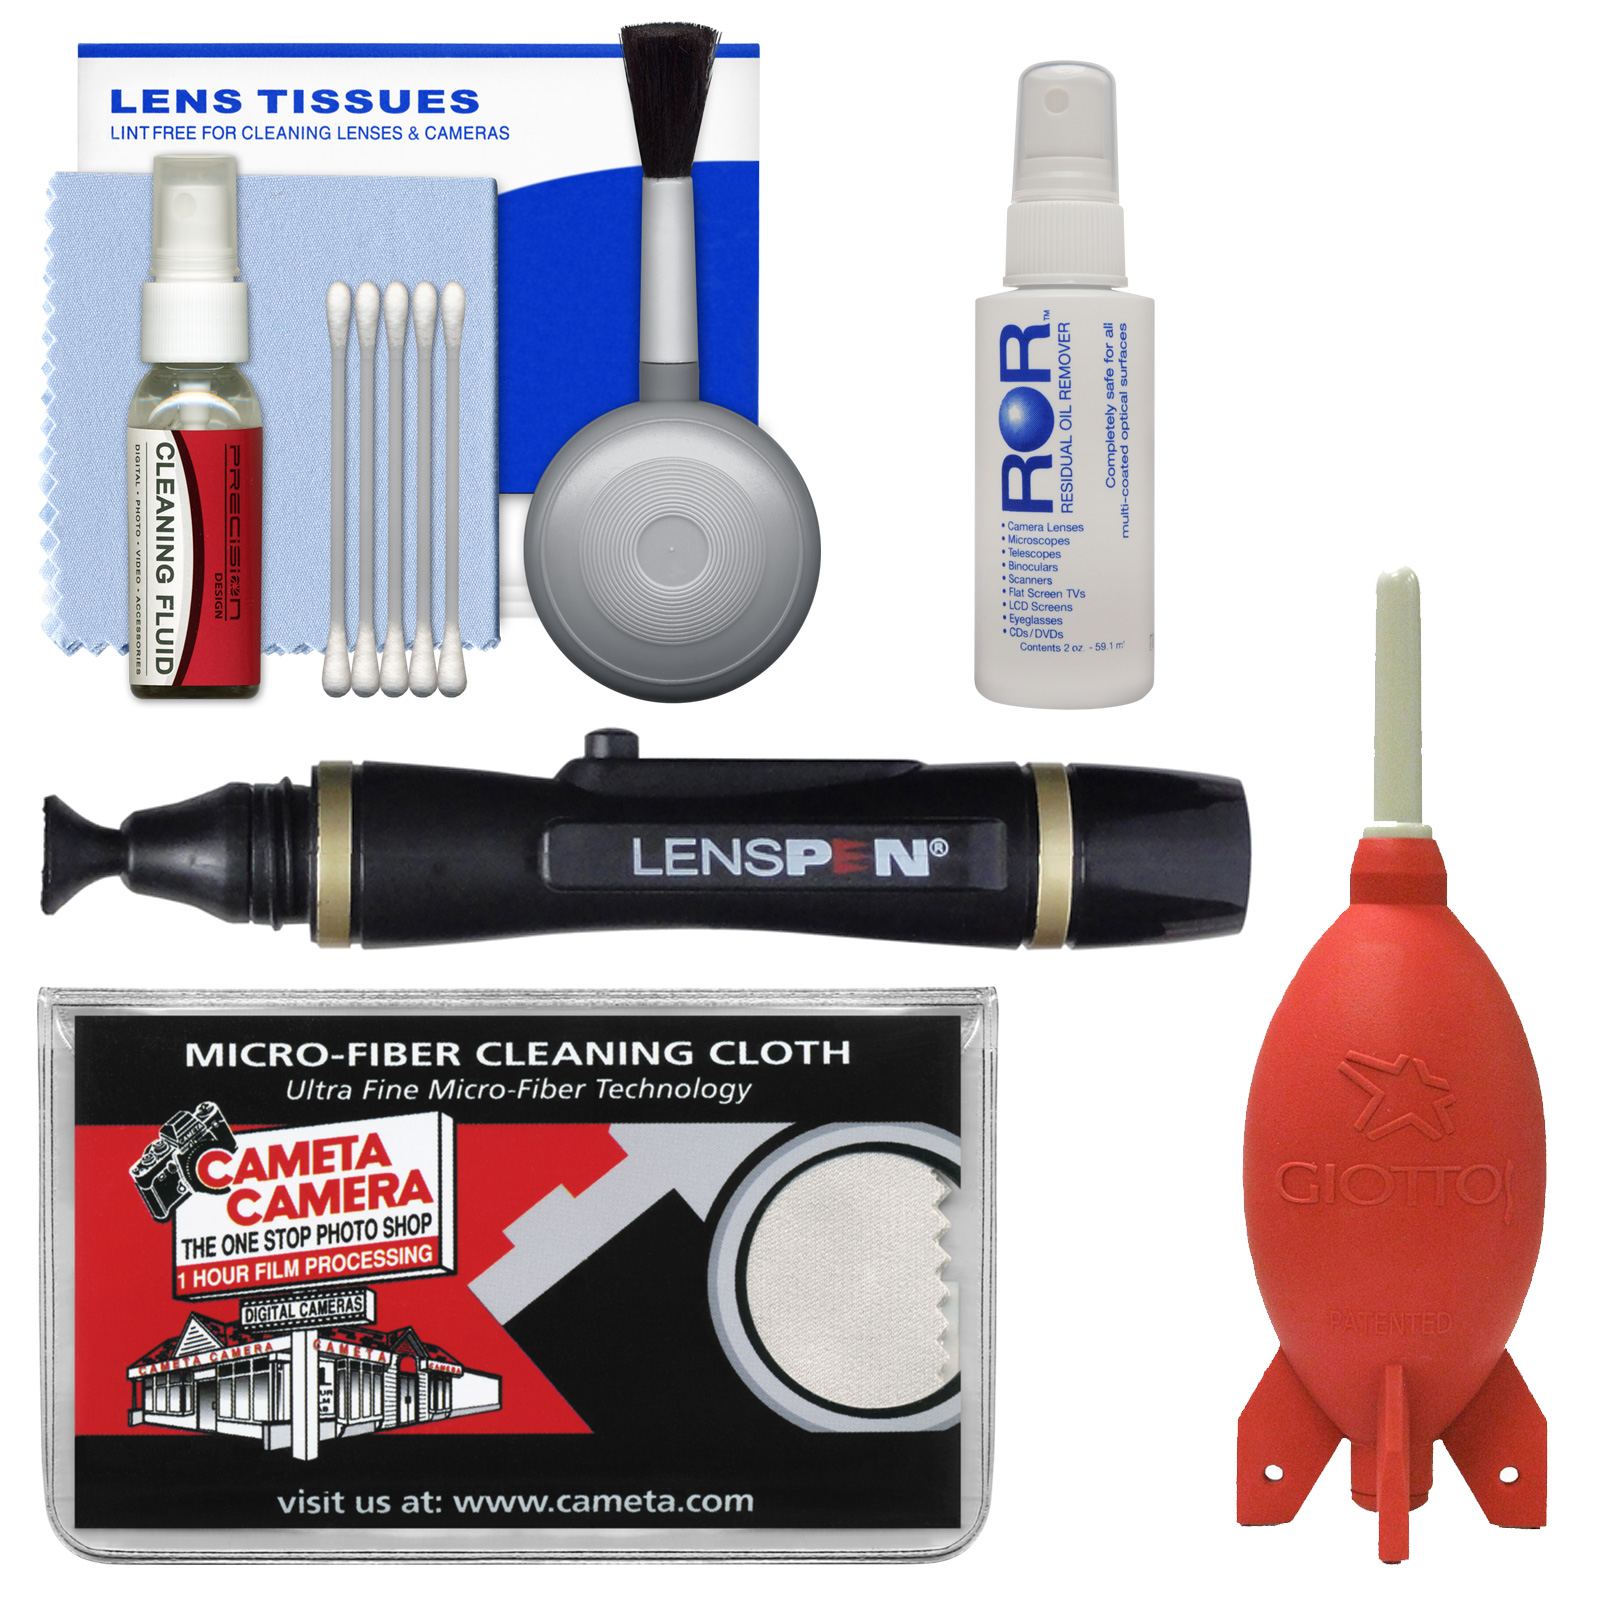 Cleaning Kit Essential Bundle with Blower, Fluid, Lenspen & Cloth for Canon, Nikon, Fuji, Olympus,Panasonic, Pentax & Sony ILC/DSLR Cameras